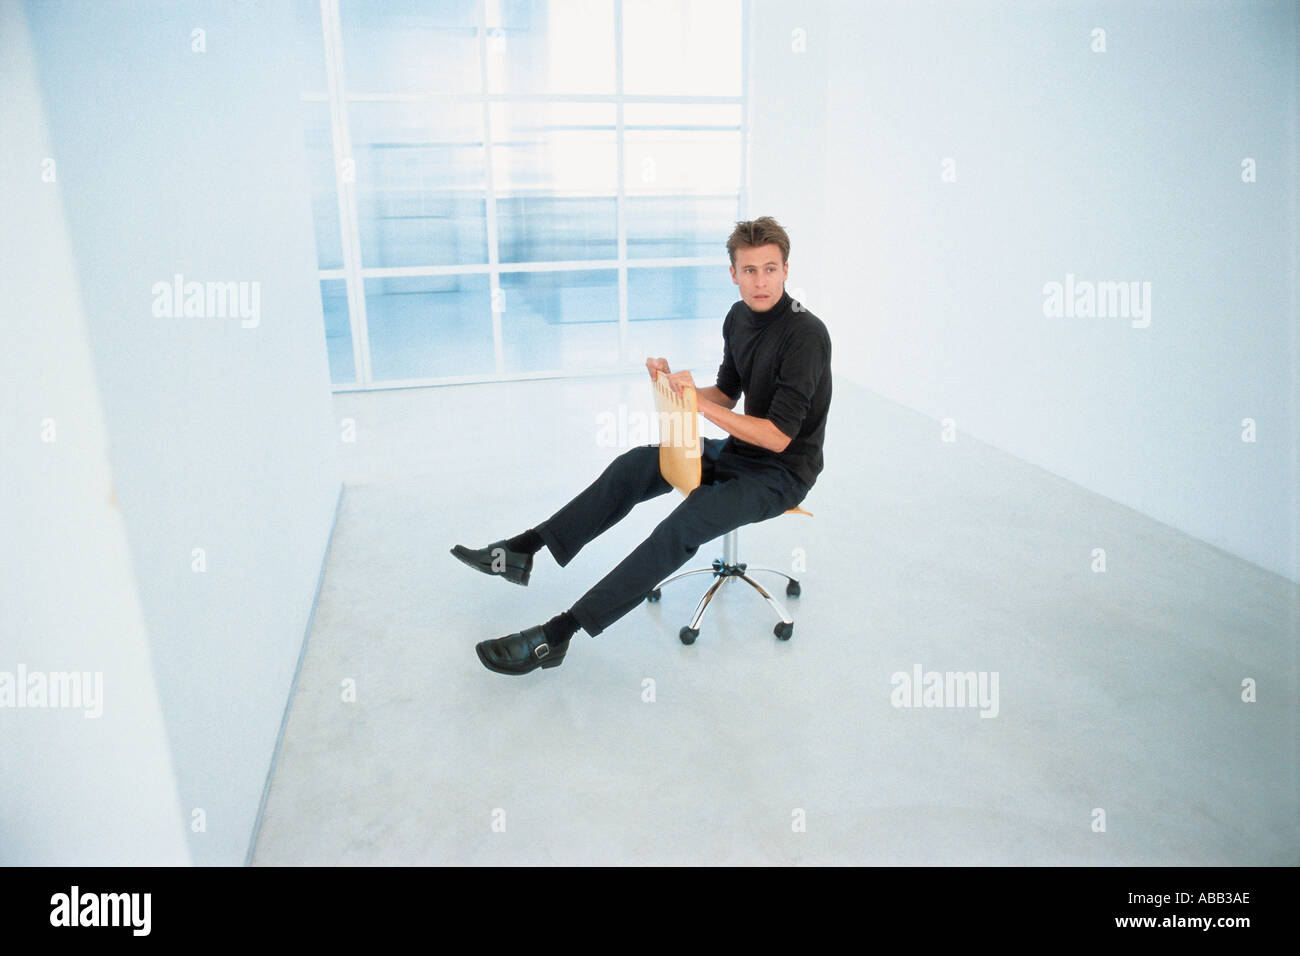 Office worker messing around - Stock Image